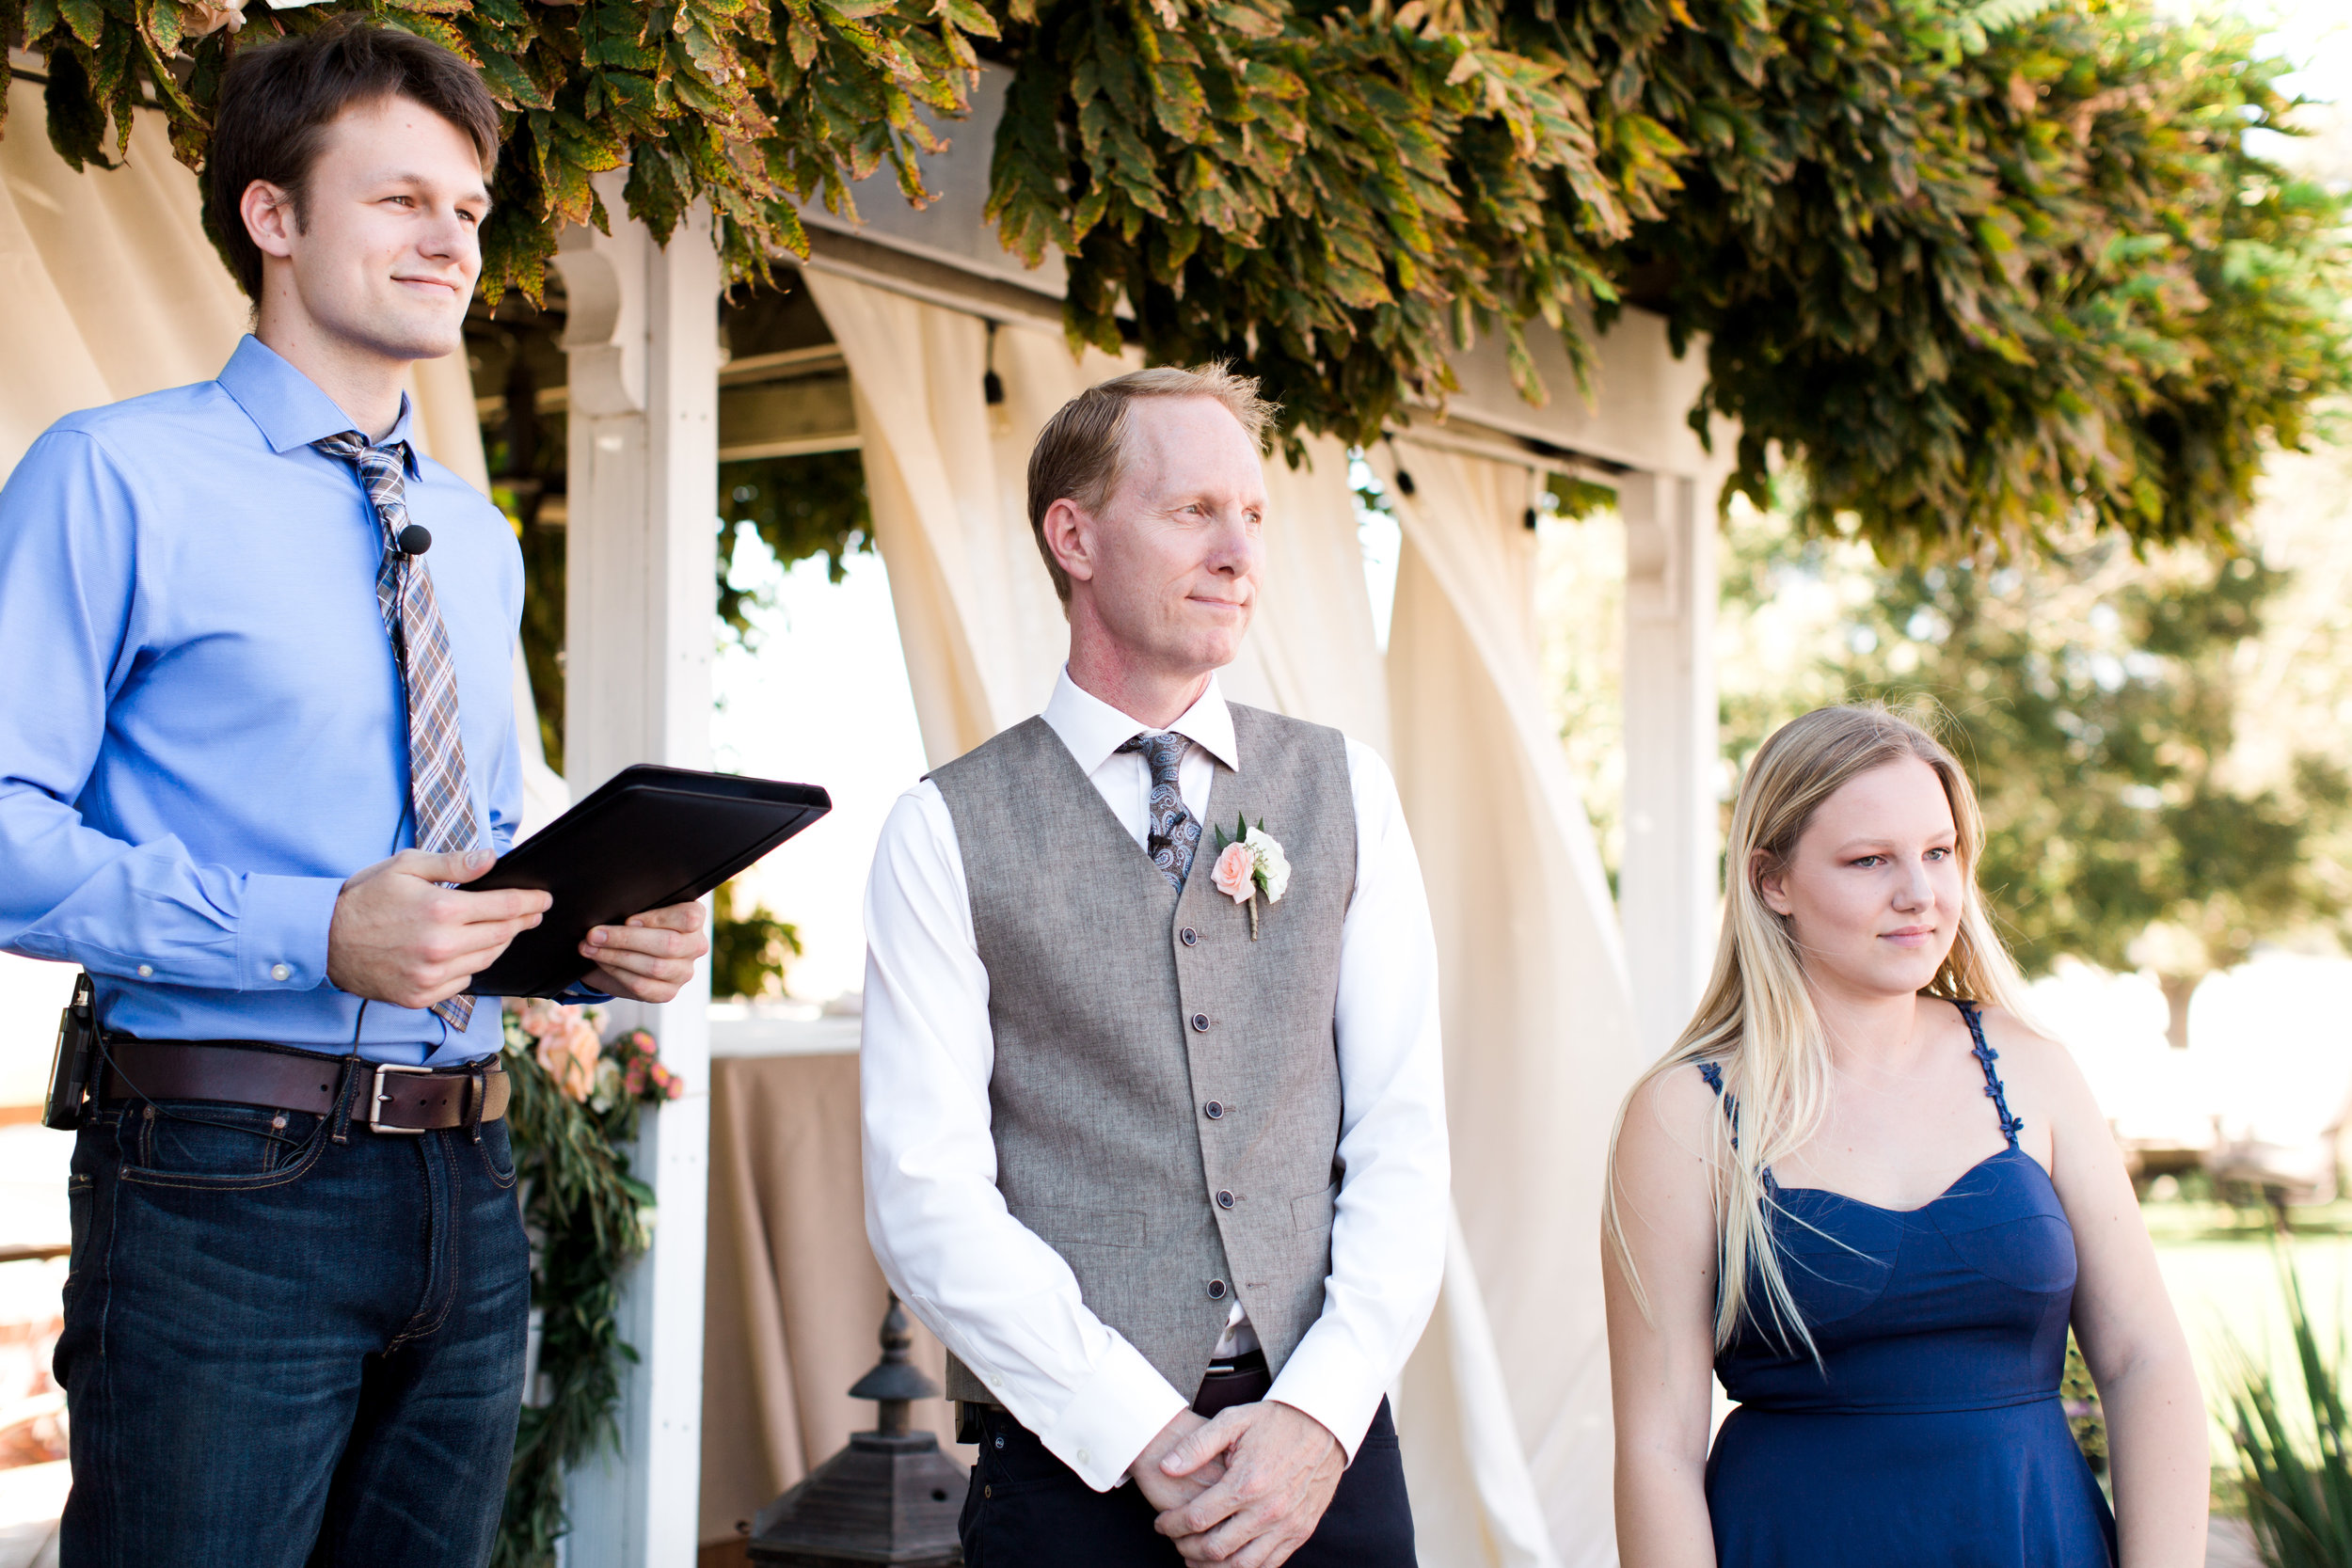 intimate-backyard-wedding-sonoma-california-11.jpg